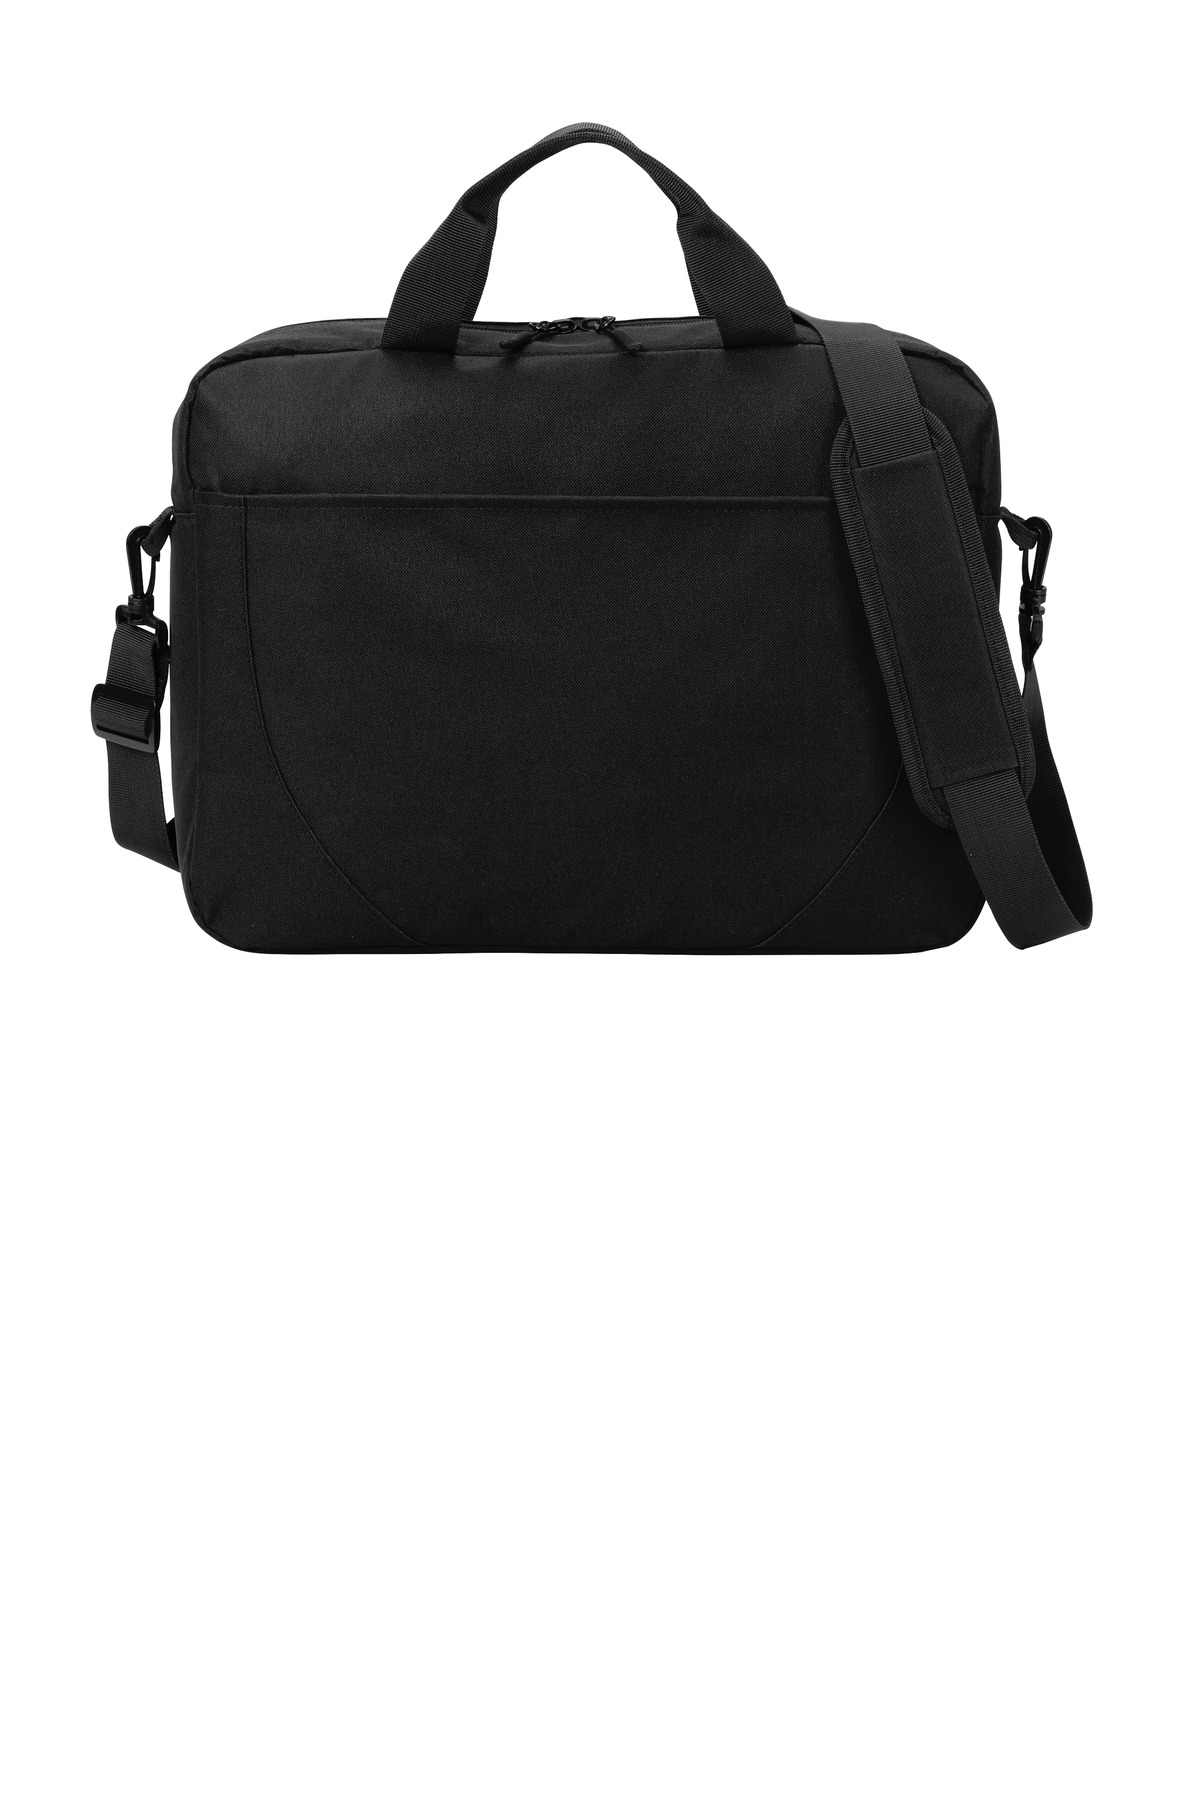 Port Authority  ®  Access Briefcase. BG318 - Black